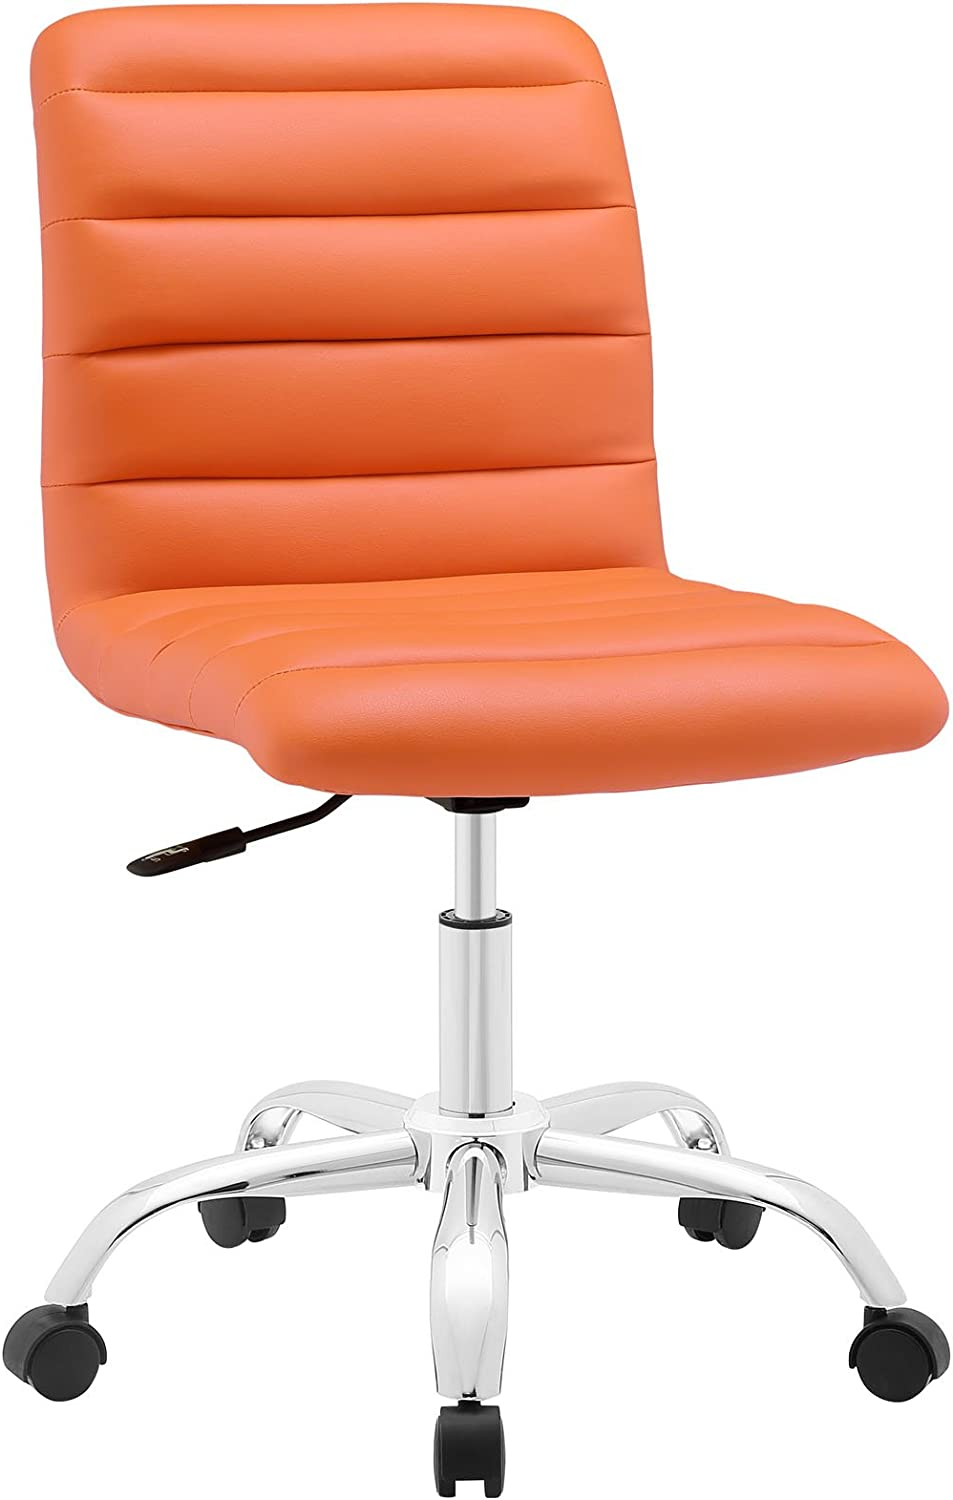 Modway Ripple Ribbed Armless Mid Back Swivel Computer Desk Office Chair In Orange